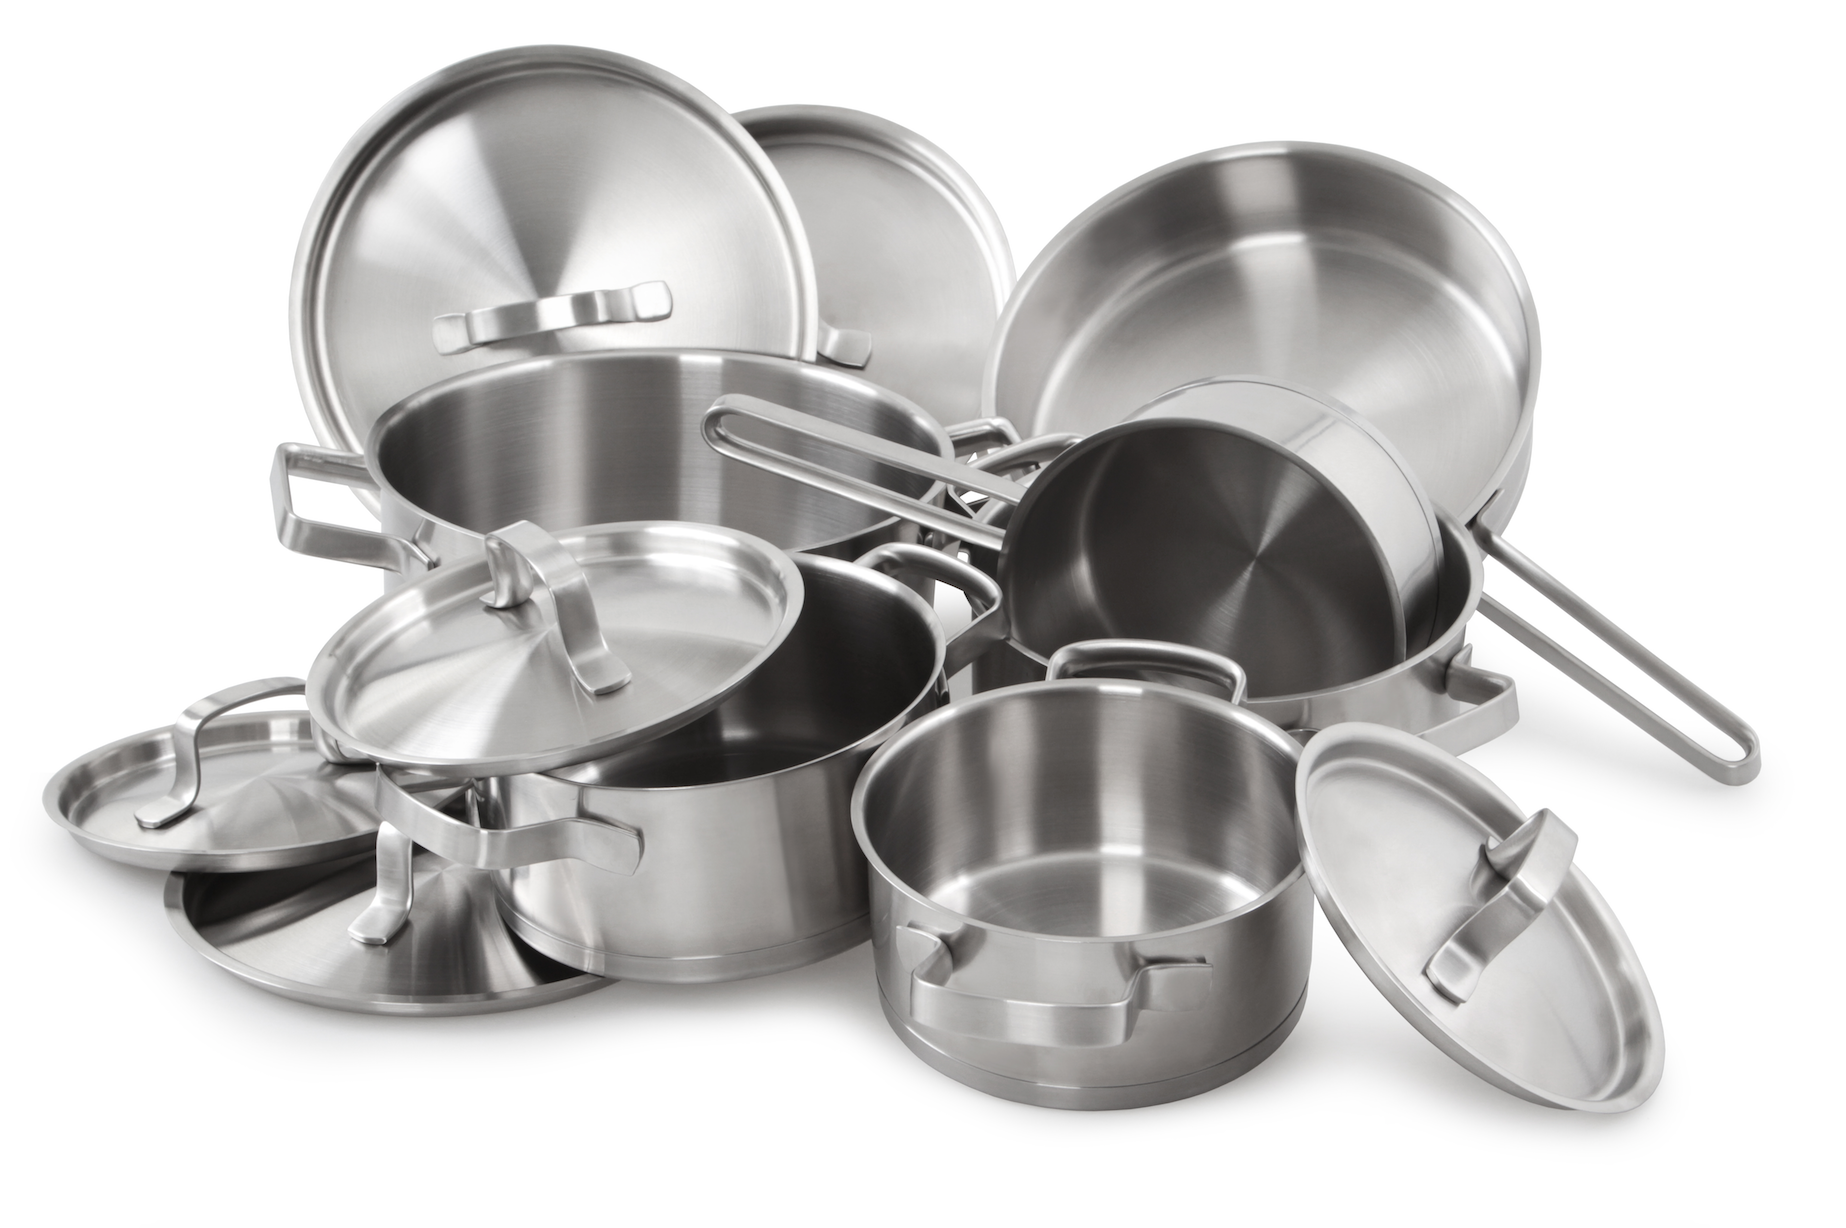 Three Tips to Get the Most from your Cookware